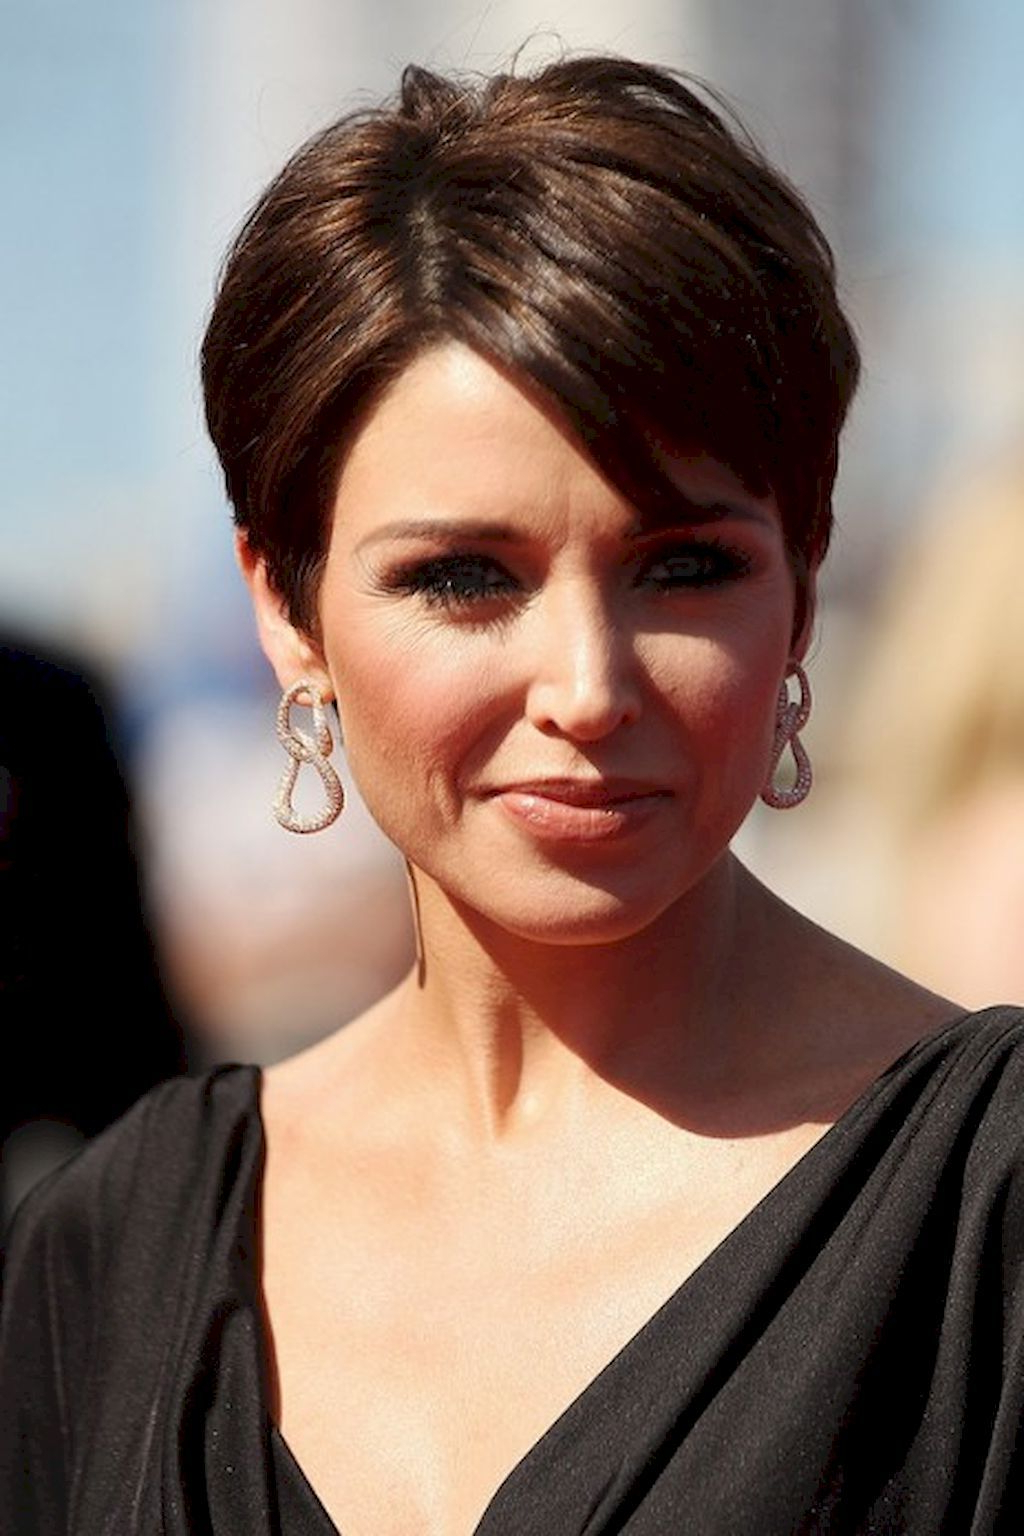 72 Classy Short Pixie Haircuts And Hairstyles For Thick Hair | Hair Pertaining To Short And Classy Haircuts For Thick Hair (View 11 of 20)